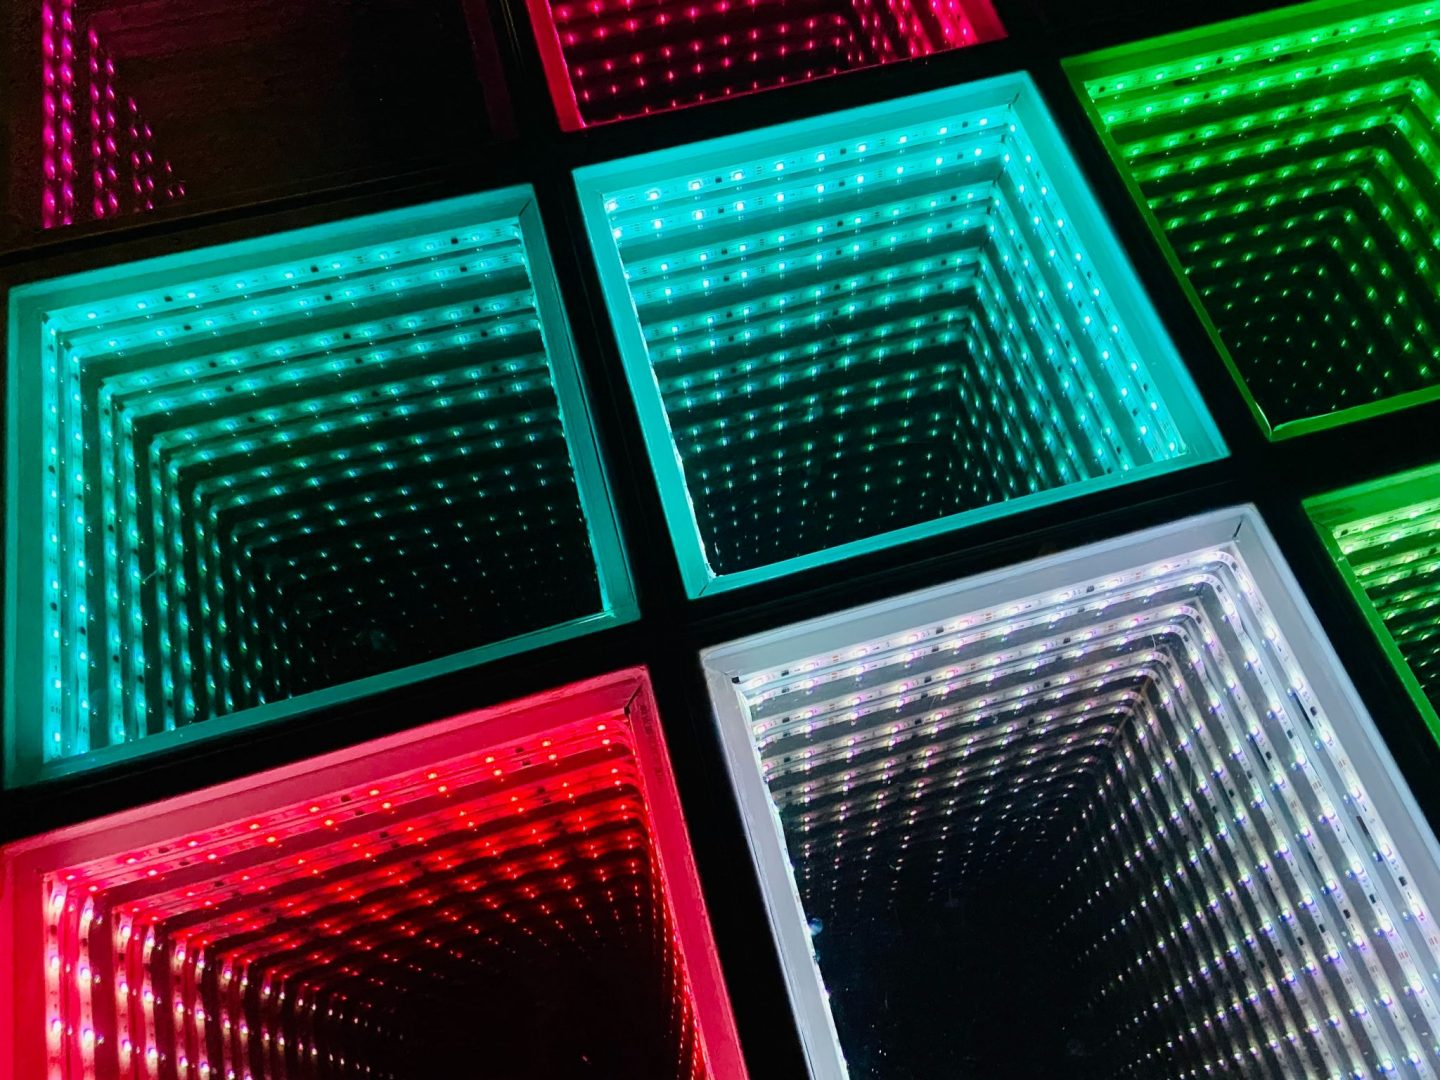 THE TOP USES AND BENEFITS OF A LED WALL FOR SPECIAL EVENTS